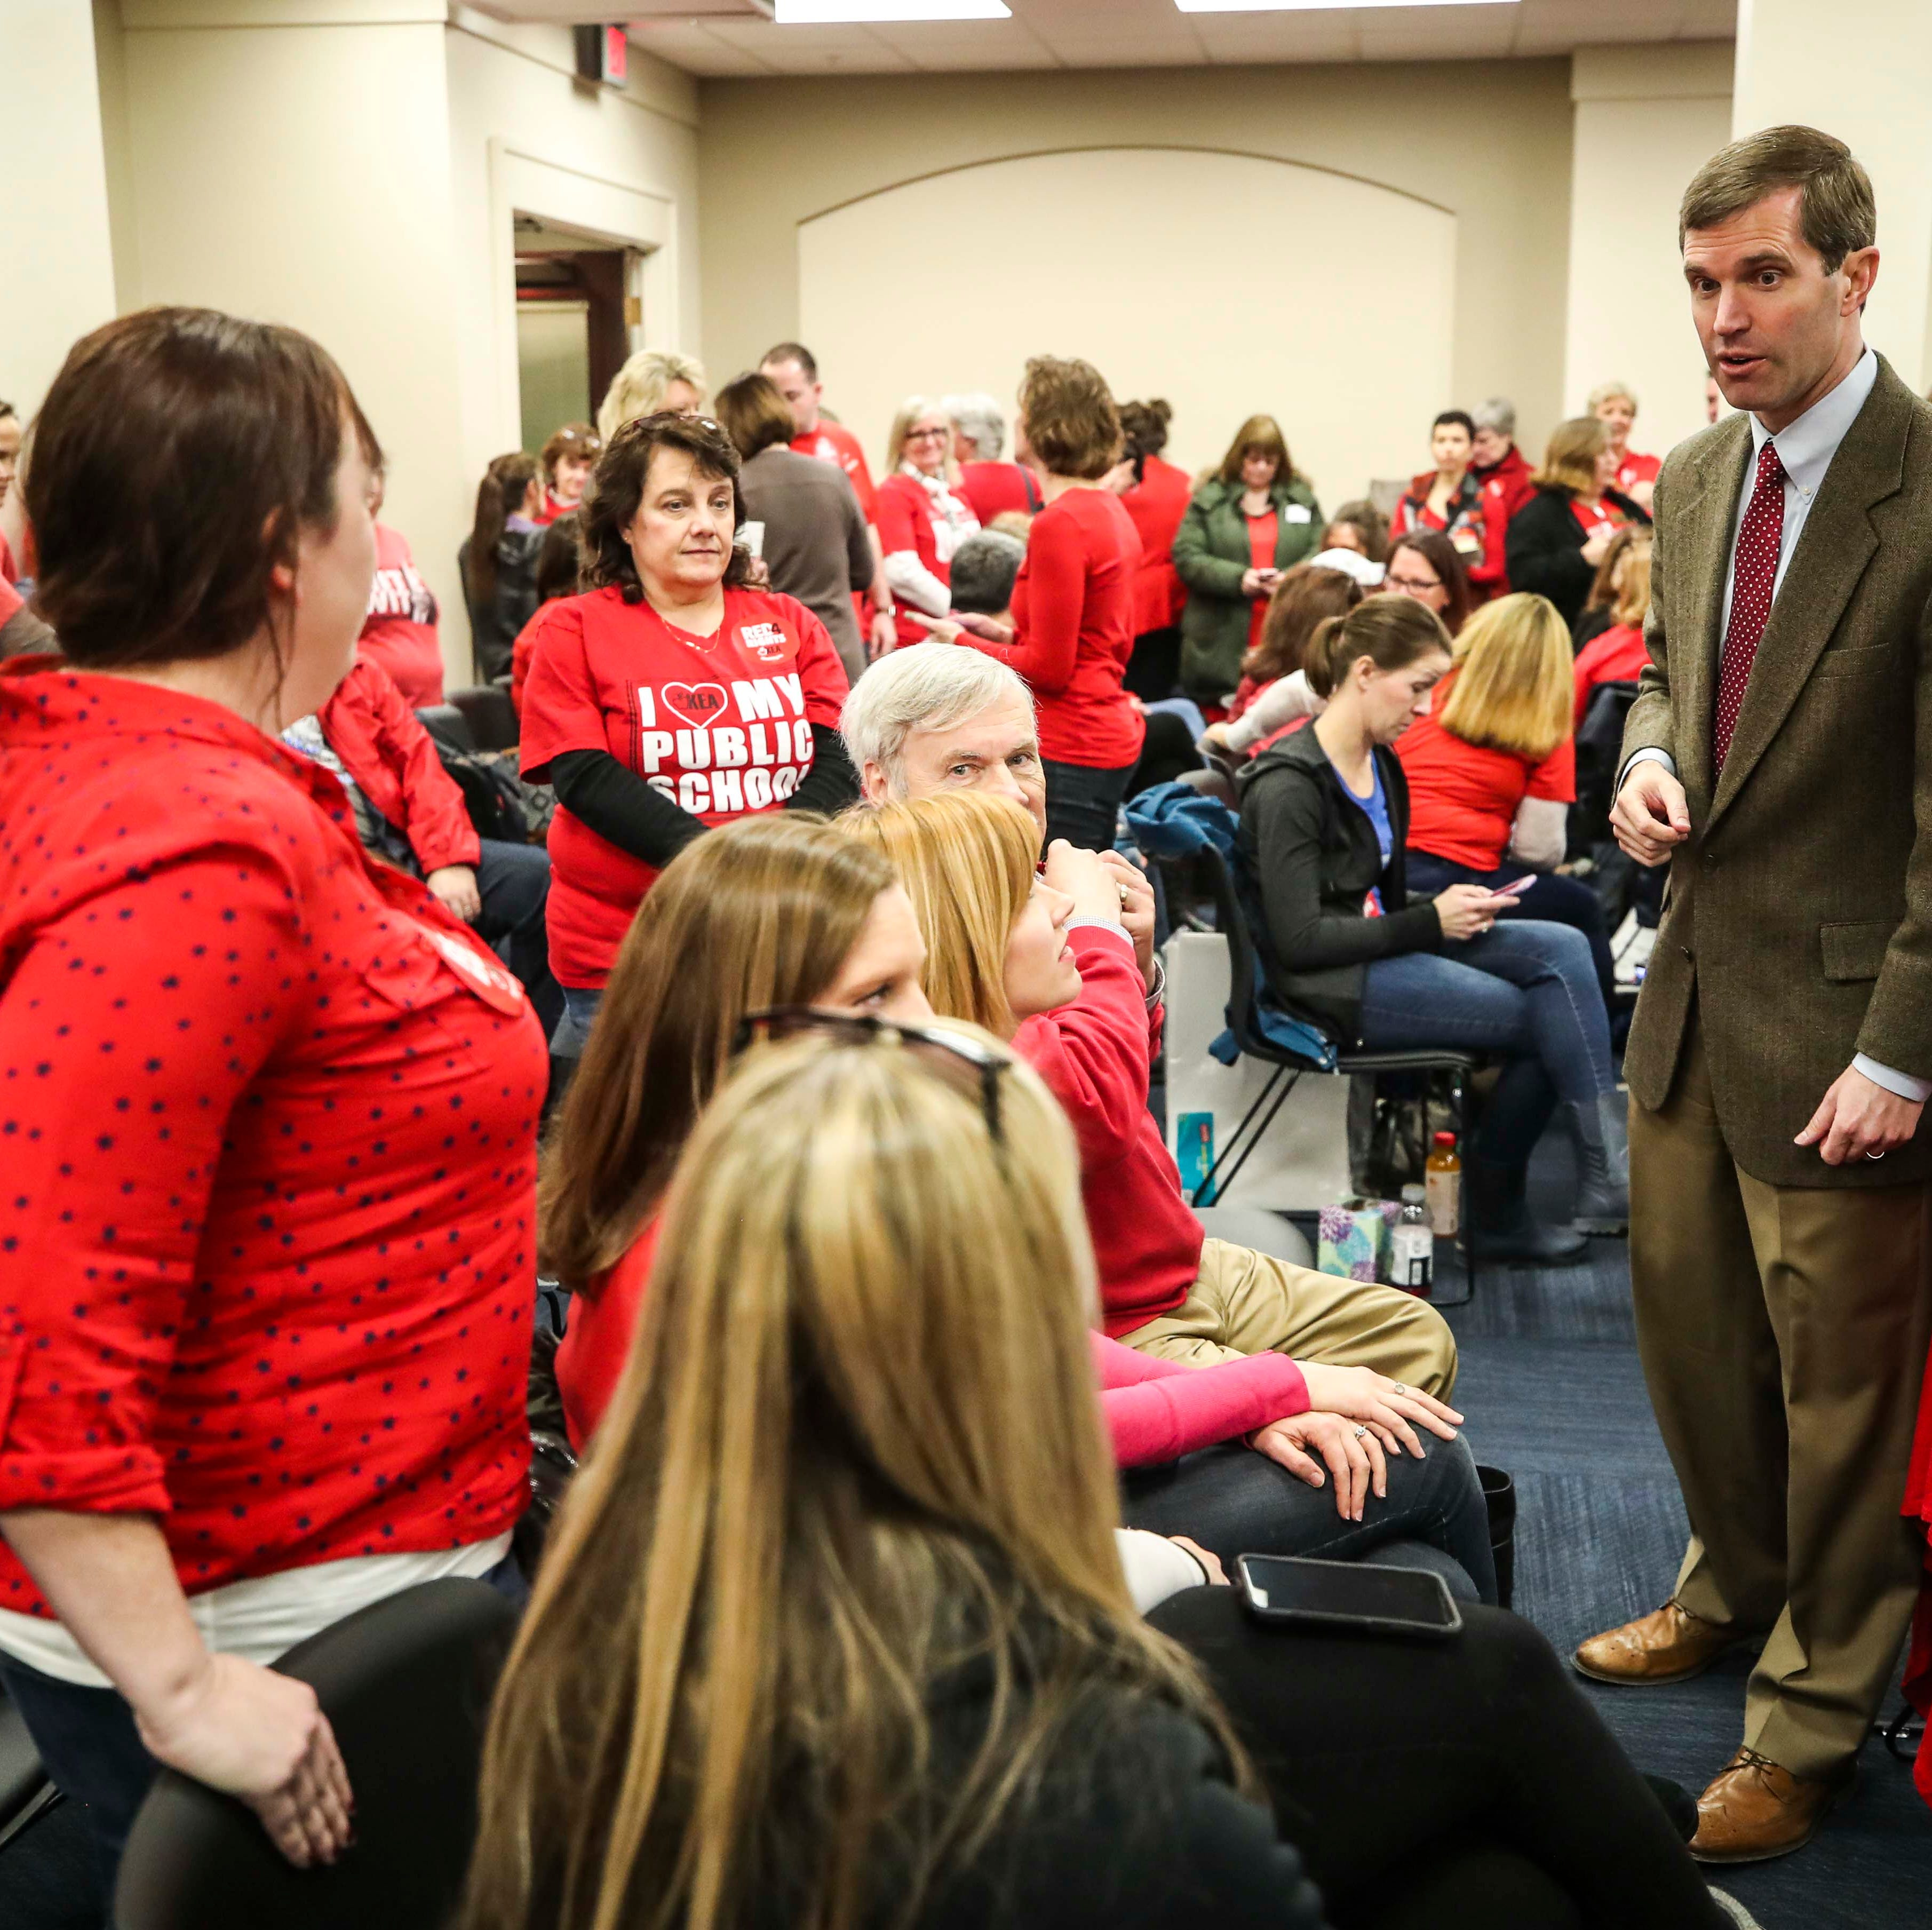 Kentucky teacher sickout subpoenas are illegal and must be withdrawn, Beshear says